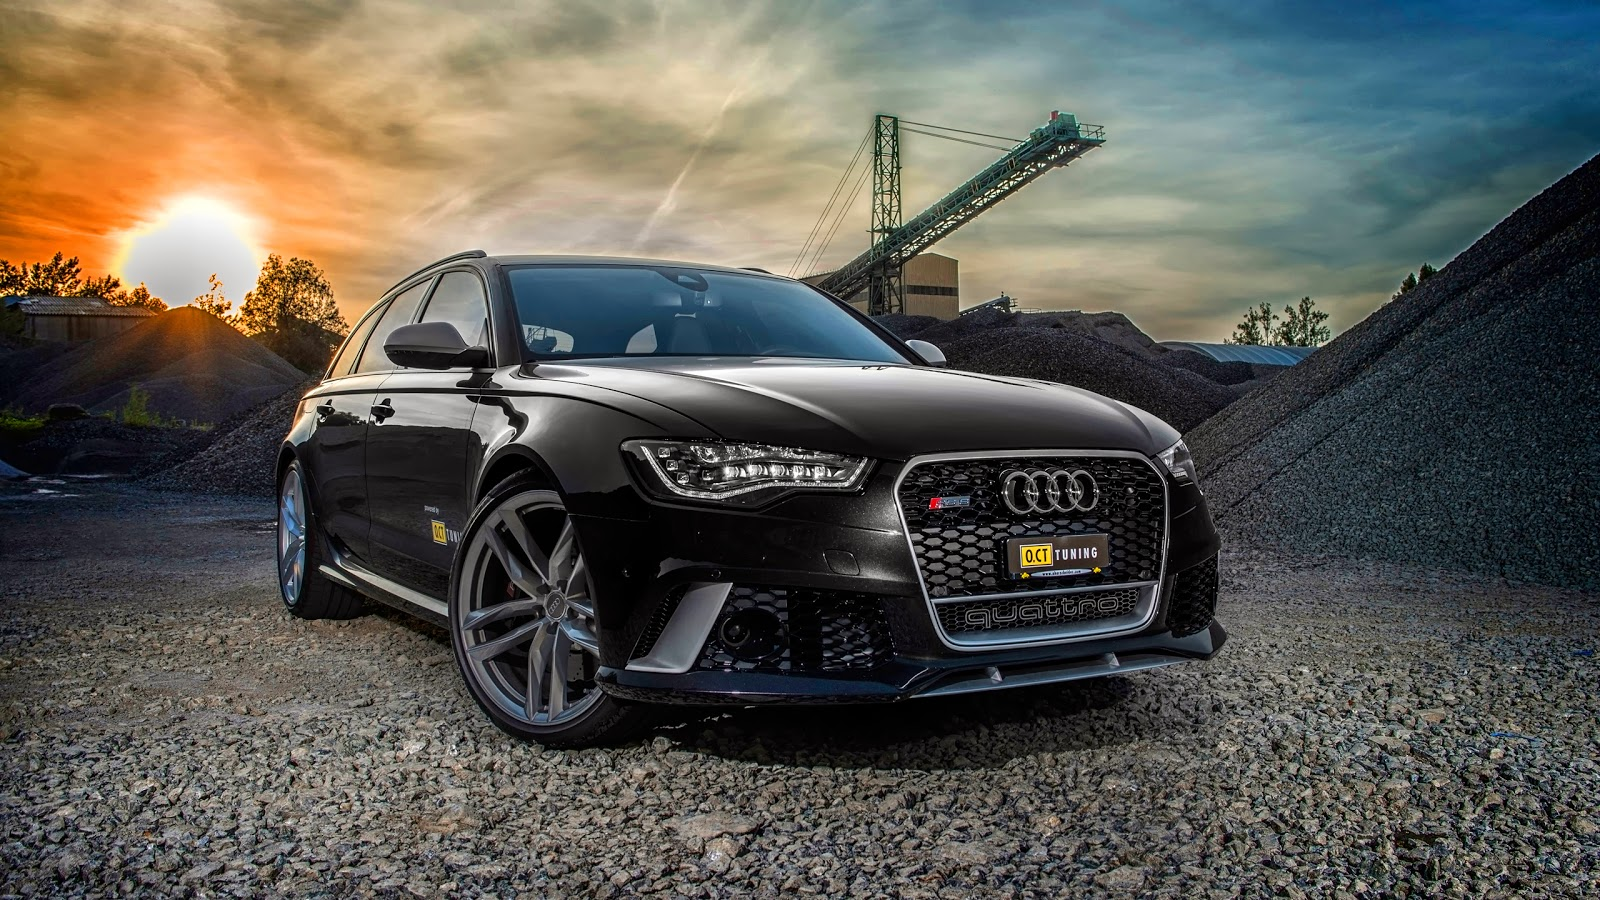 carwp o ct tuning audi rs6 quattro 2013 4 0 tfsi v8 biturbo 670 cv 89 8 mkgf 320 kmh 0 100 kmh. Black Bedroom Furniture Sets. Home Design Ideas